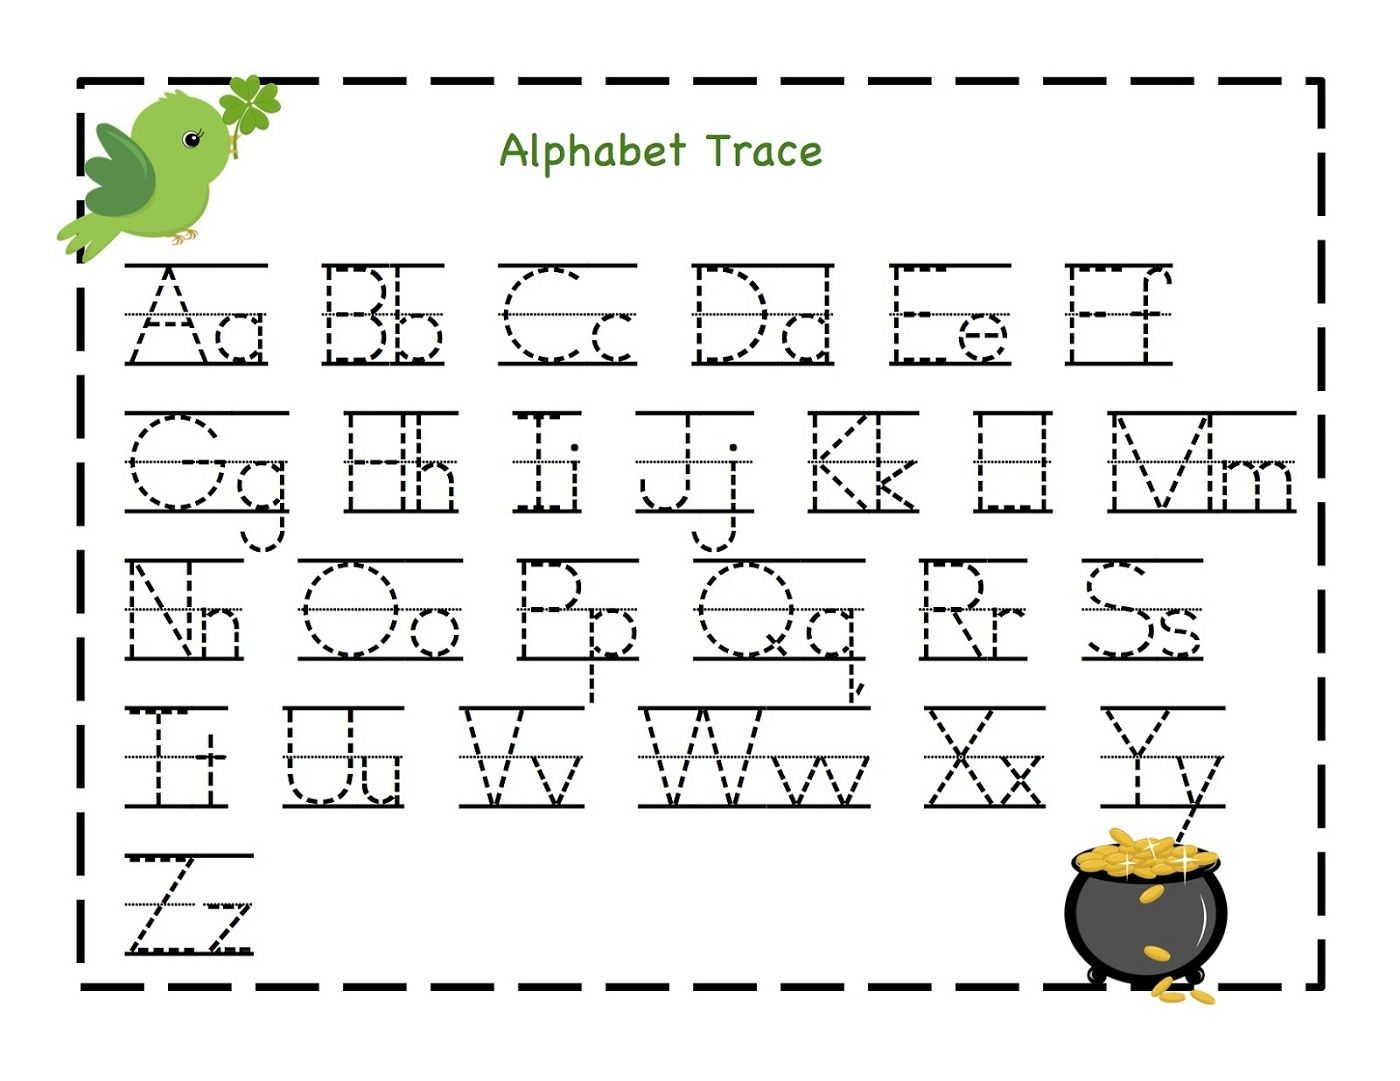 Worksheets Traceable Alphabet Worksheet traceable letter worksheets free printable ora exacta co a for preschoolers c tracing traceable